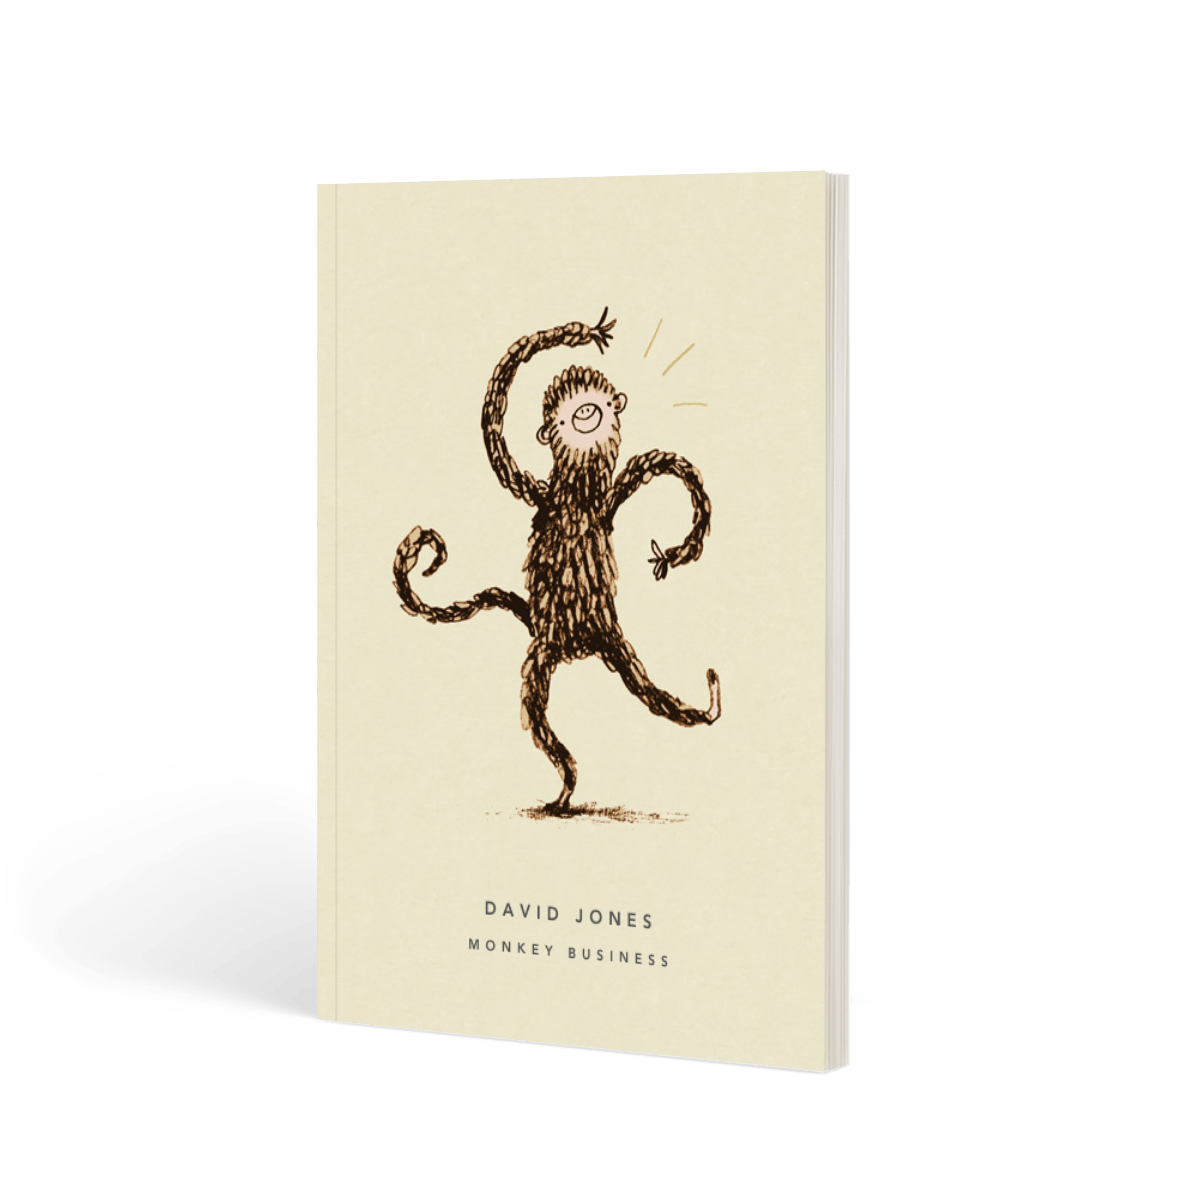 Https%3a%2f%2fwww.papier.com%2fproduct image%2f10045%2f6%2fcheeky monkey 2553 front 1570304265.png?ixlib=rb 1.1